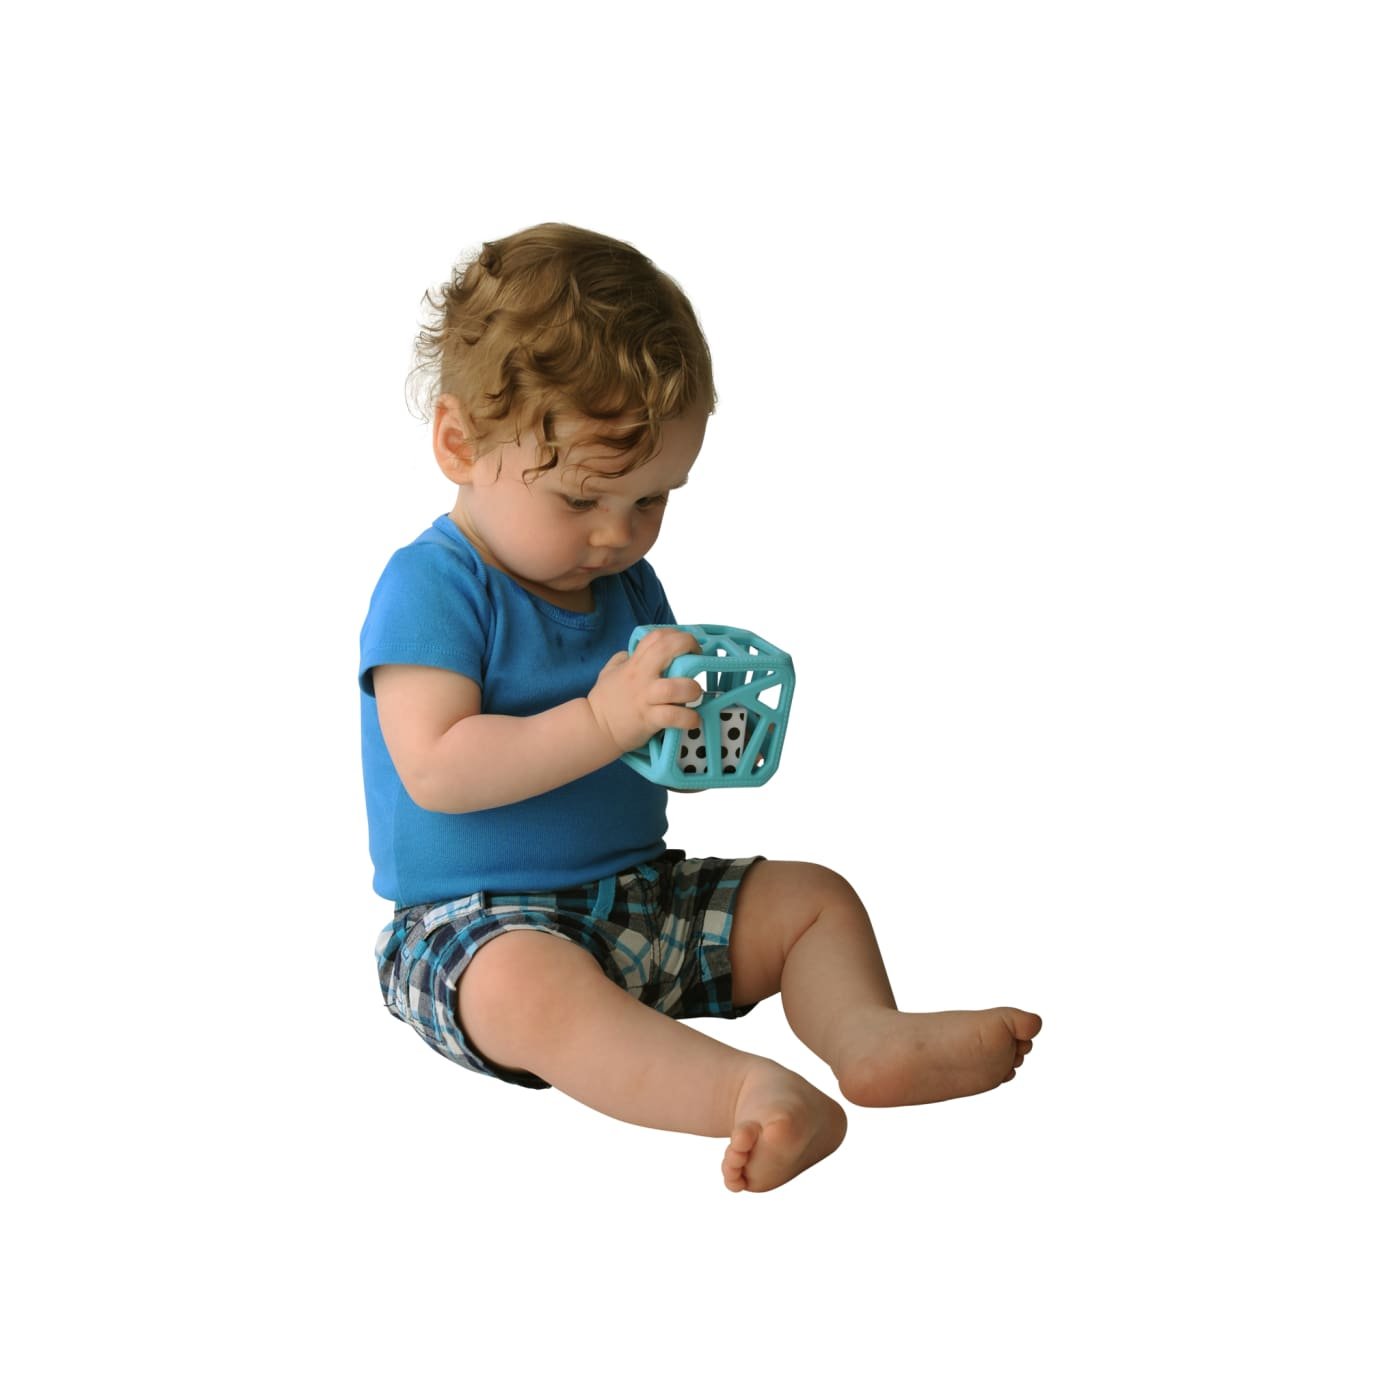 Malarkey Kids Chew Cube - Blue - NURSING & FEEDING - TEETHERS/TEETHING JEWELLERY